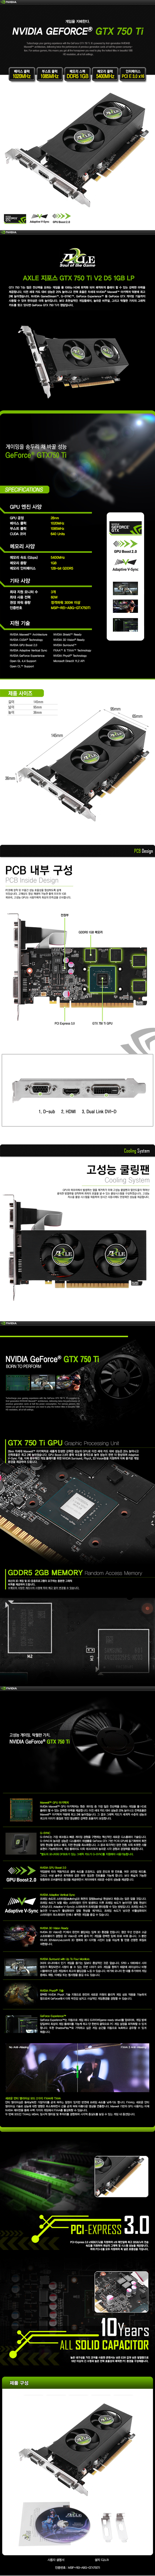 AXLE 지포스 GTX 750 Ti V2 D5 1GB LP DB——벌크.jpg